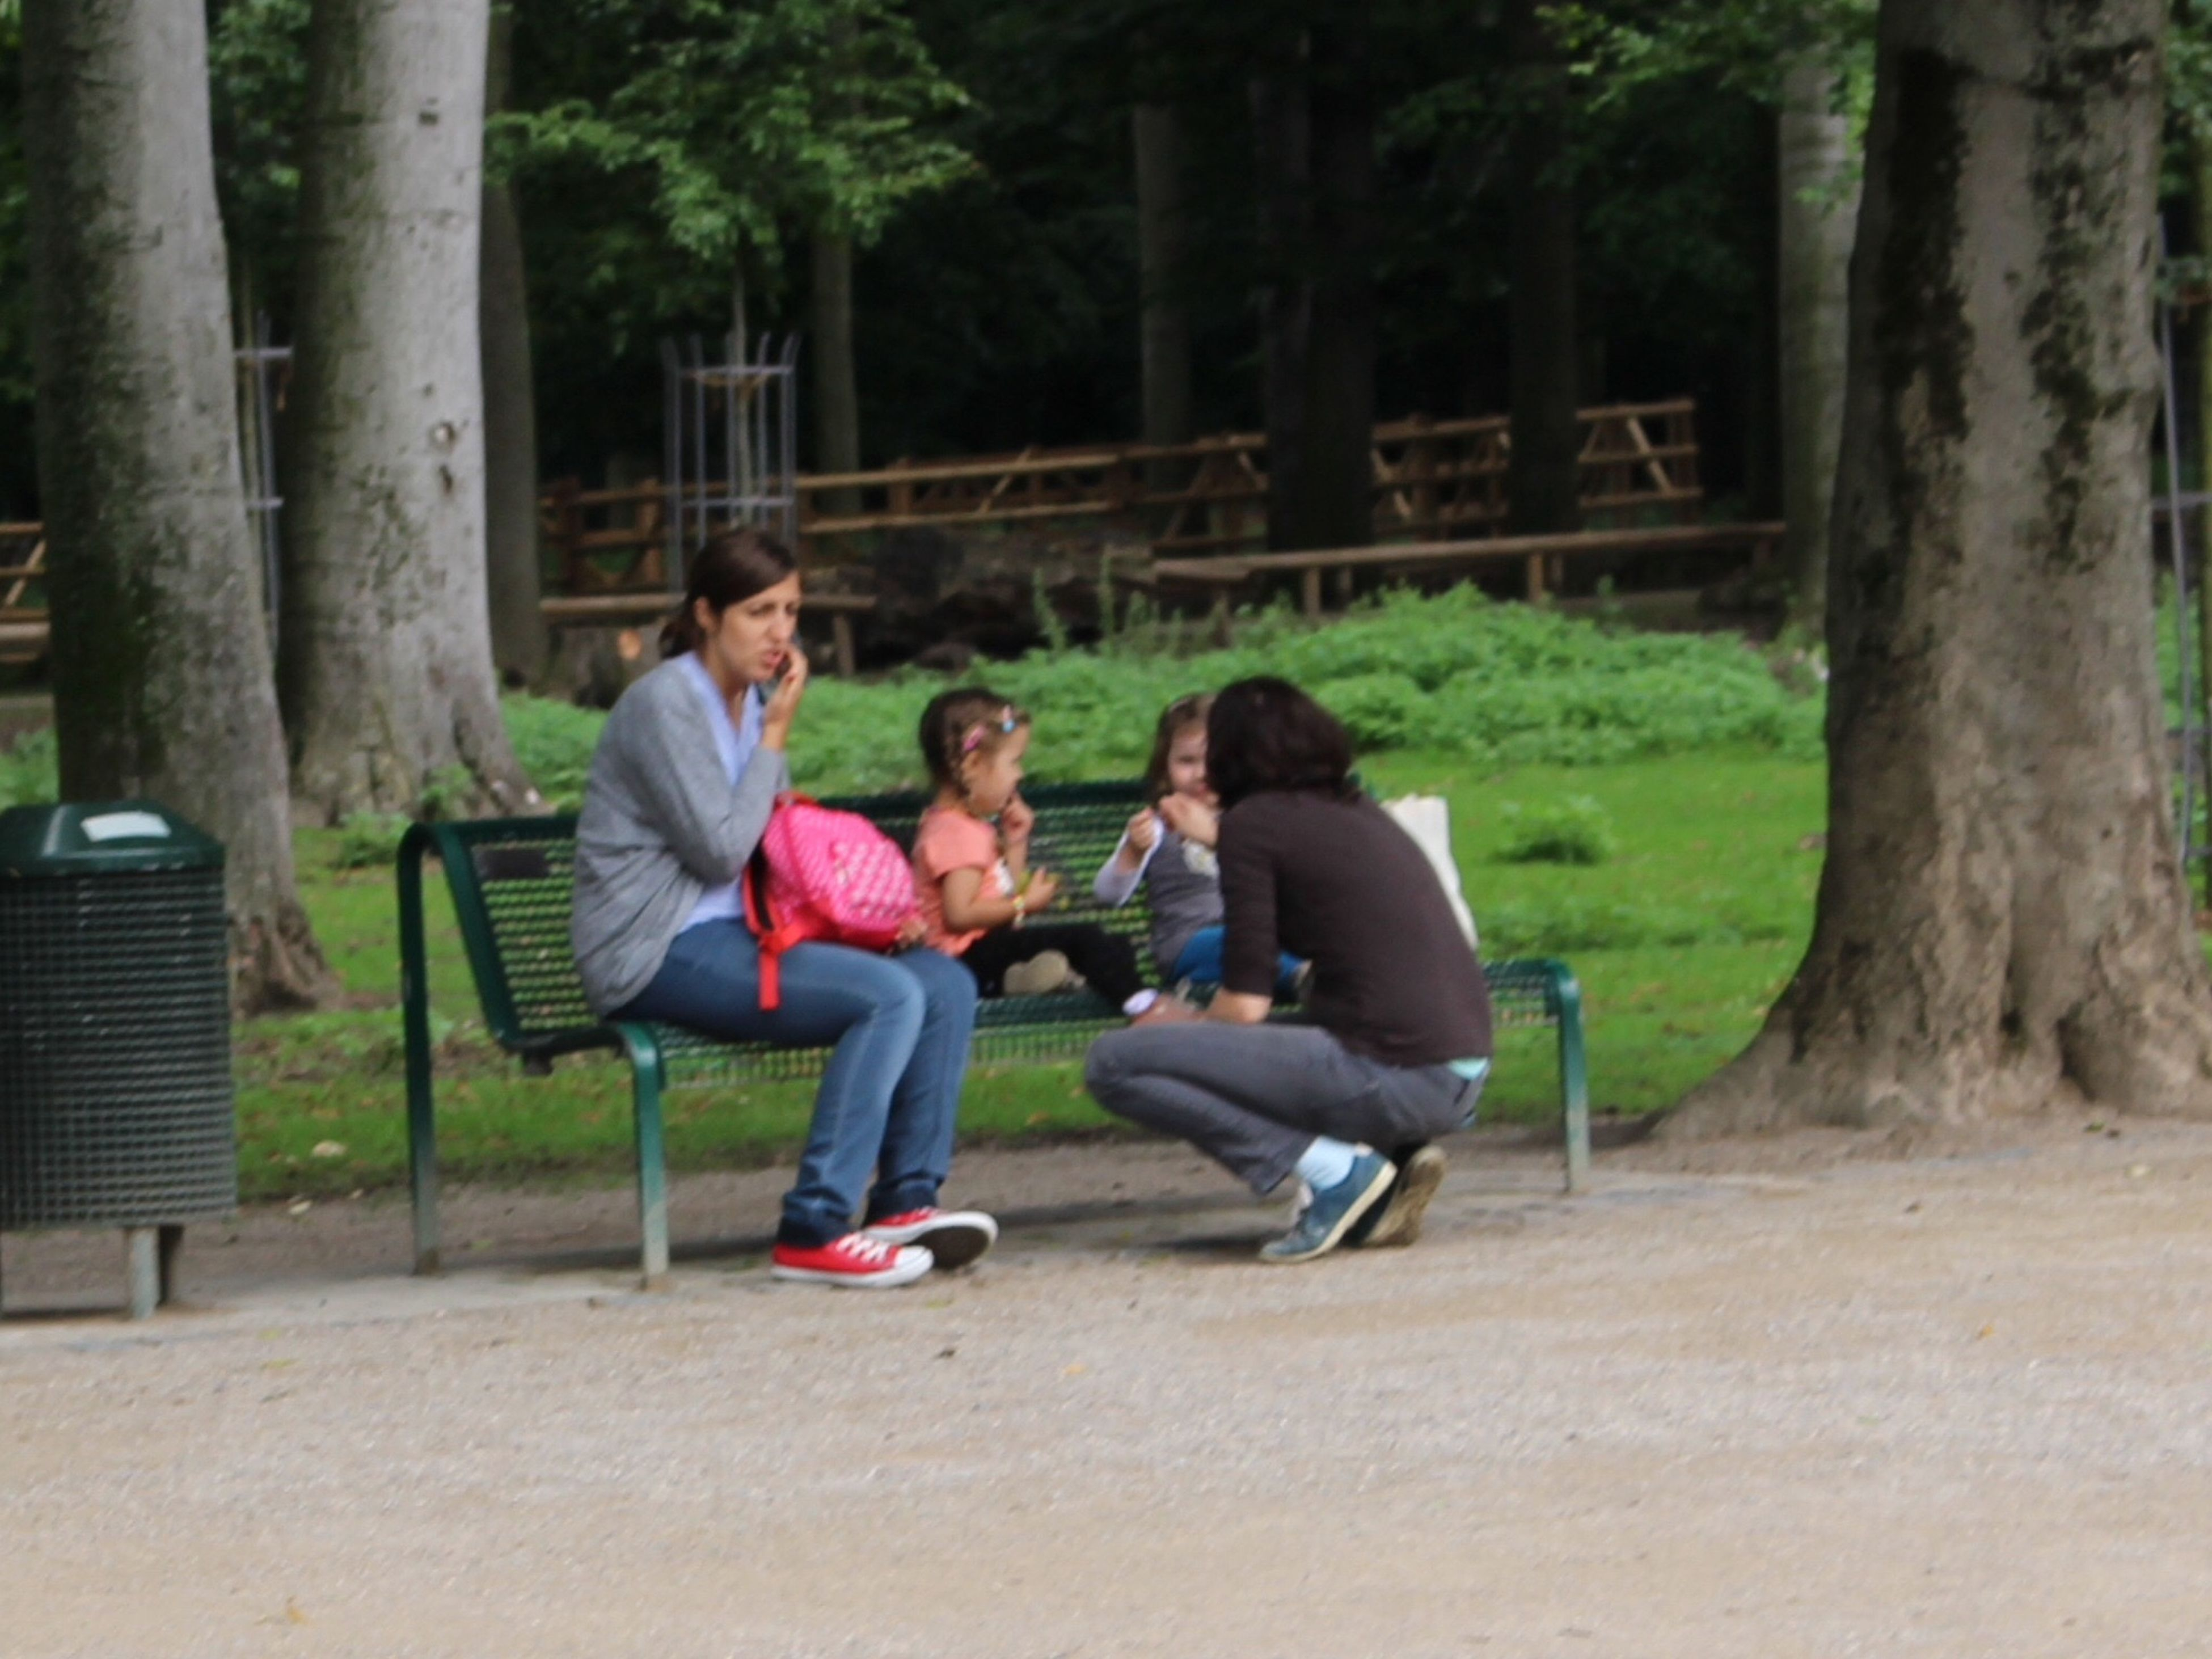 lifestyles, leisure activity, togetherness, full length, casual clothing, bonding, tree, person, love, sitting, childhood, boys, young adult, friendship, family, park - man made space, girls, enjoyment